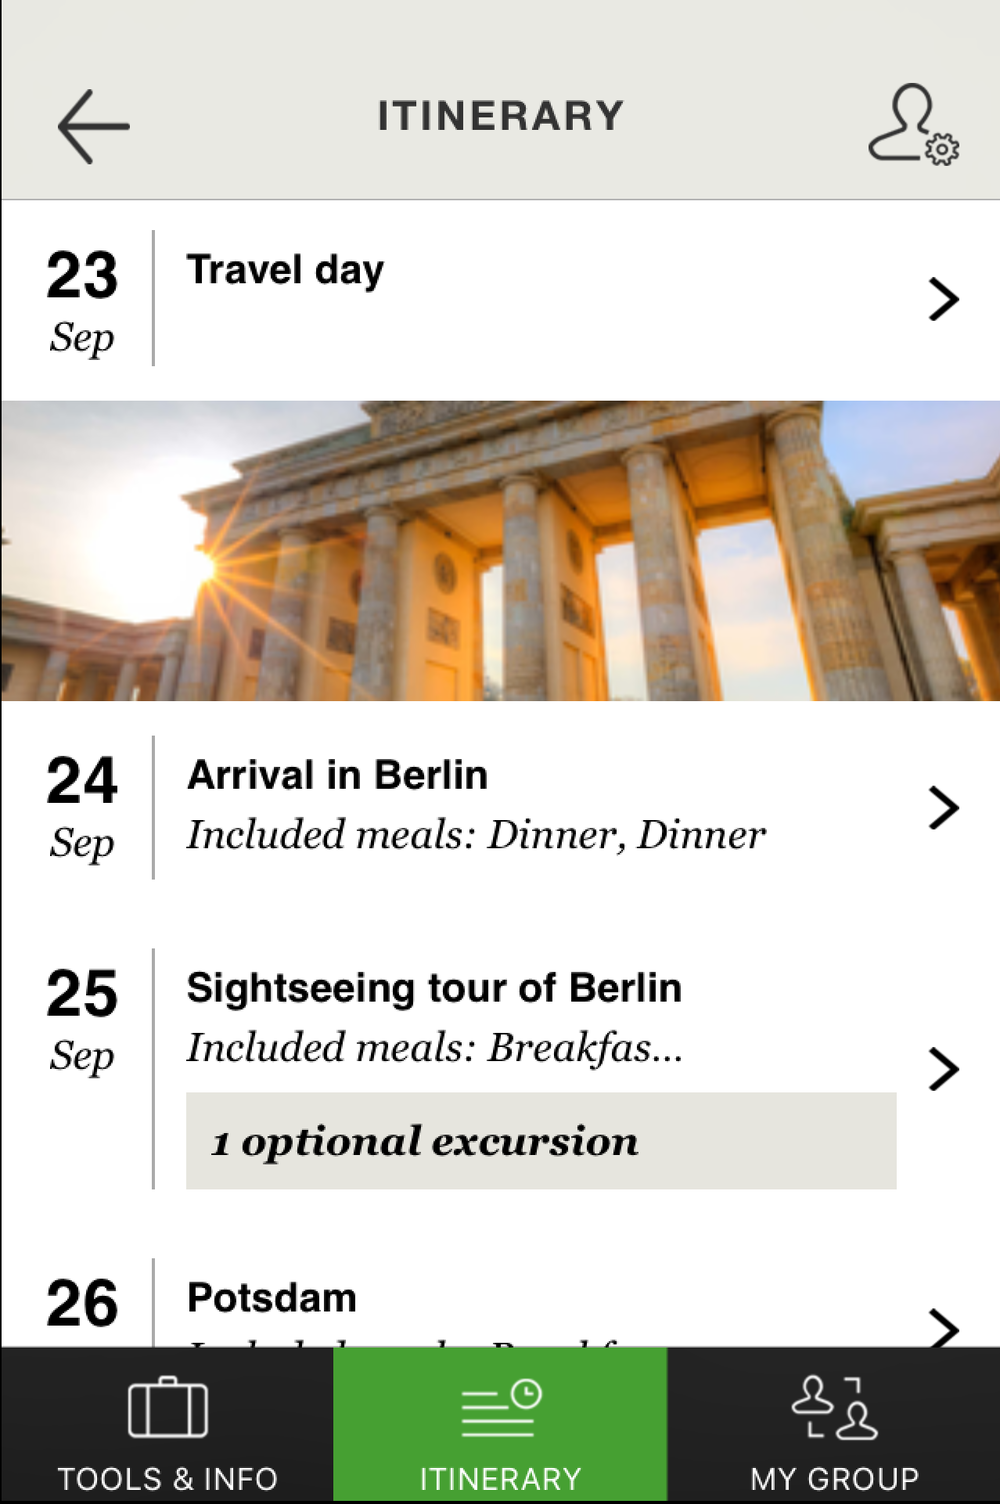 Main itinerary view (click to enlarge)